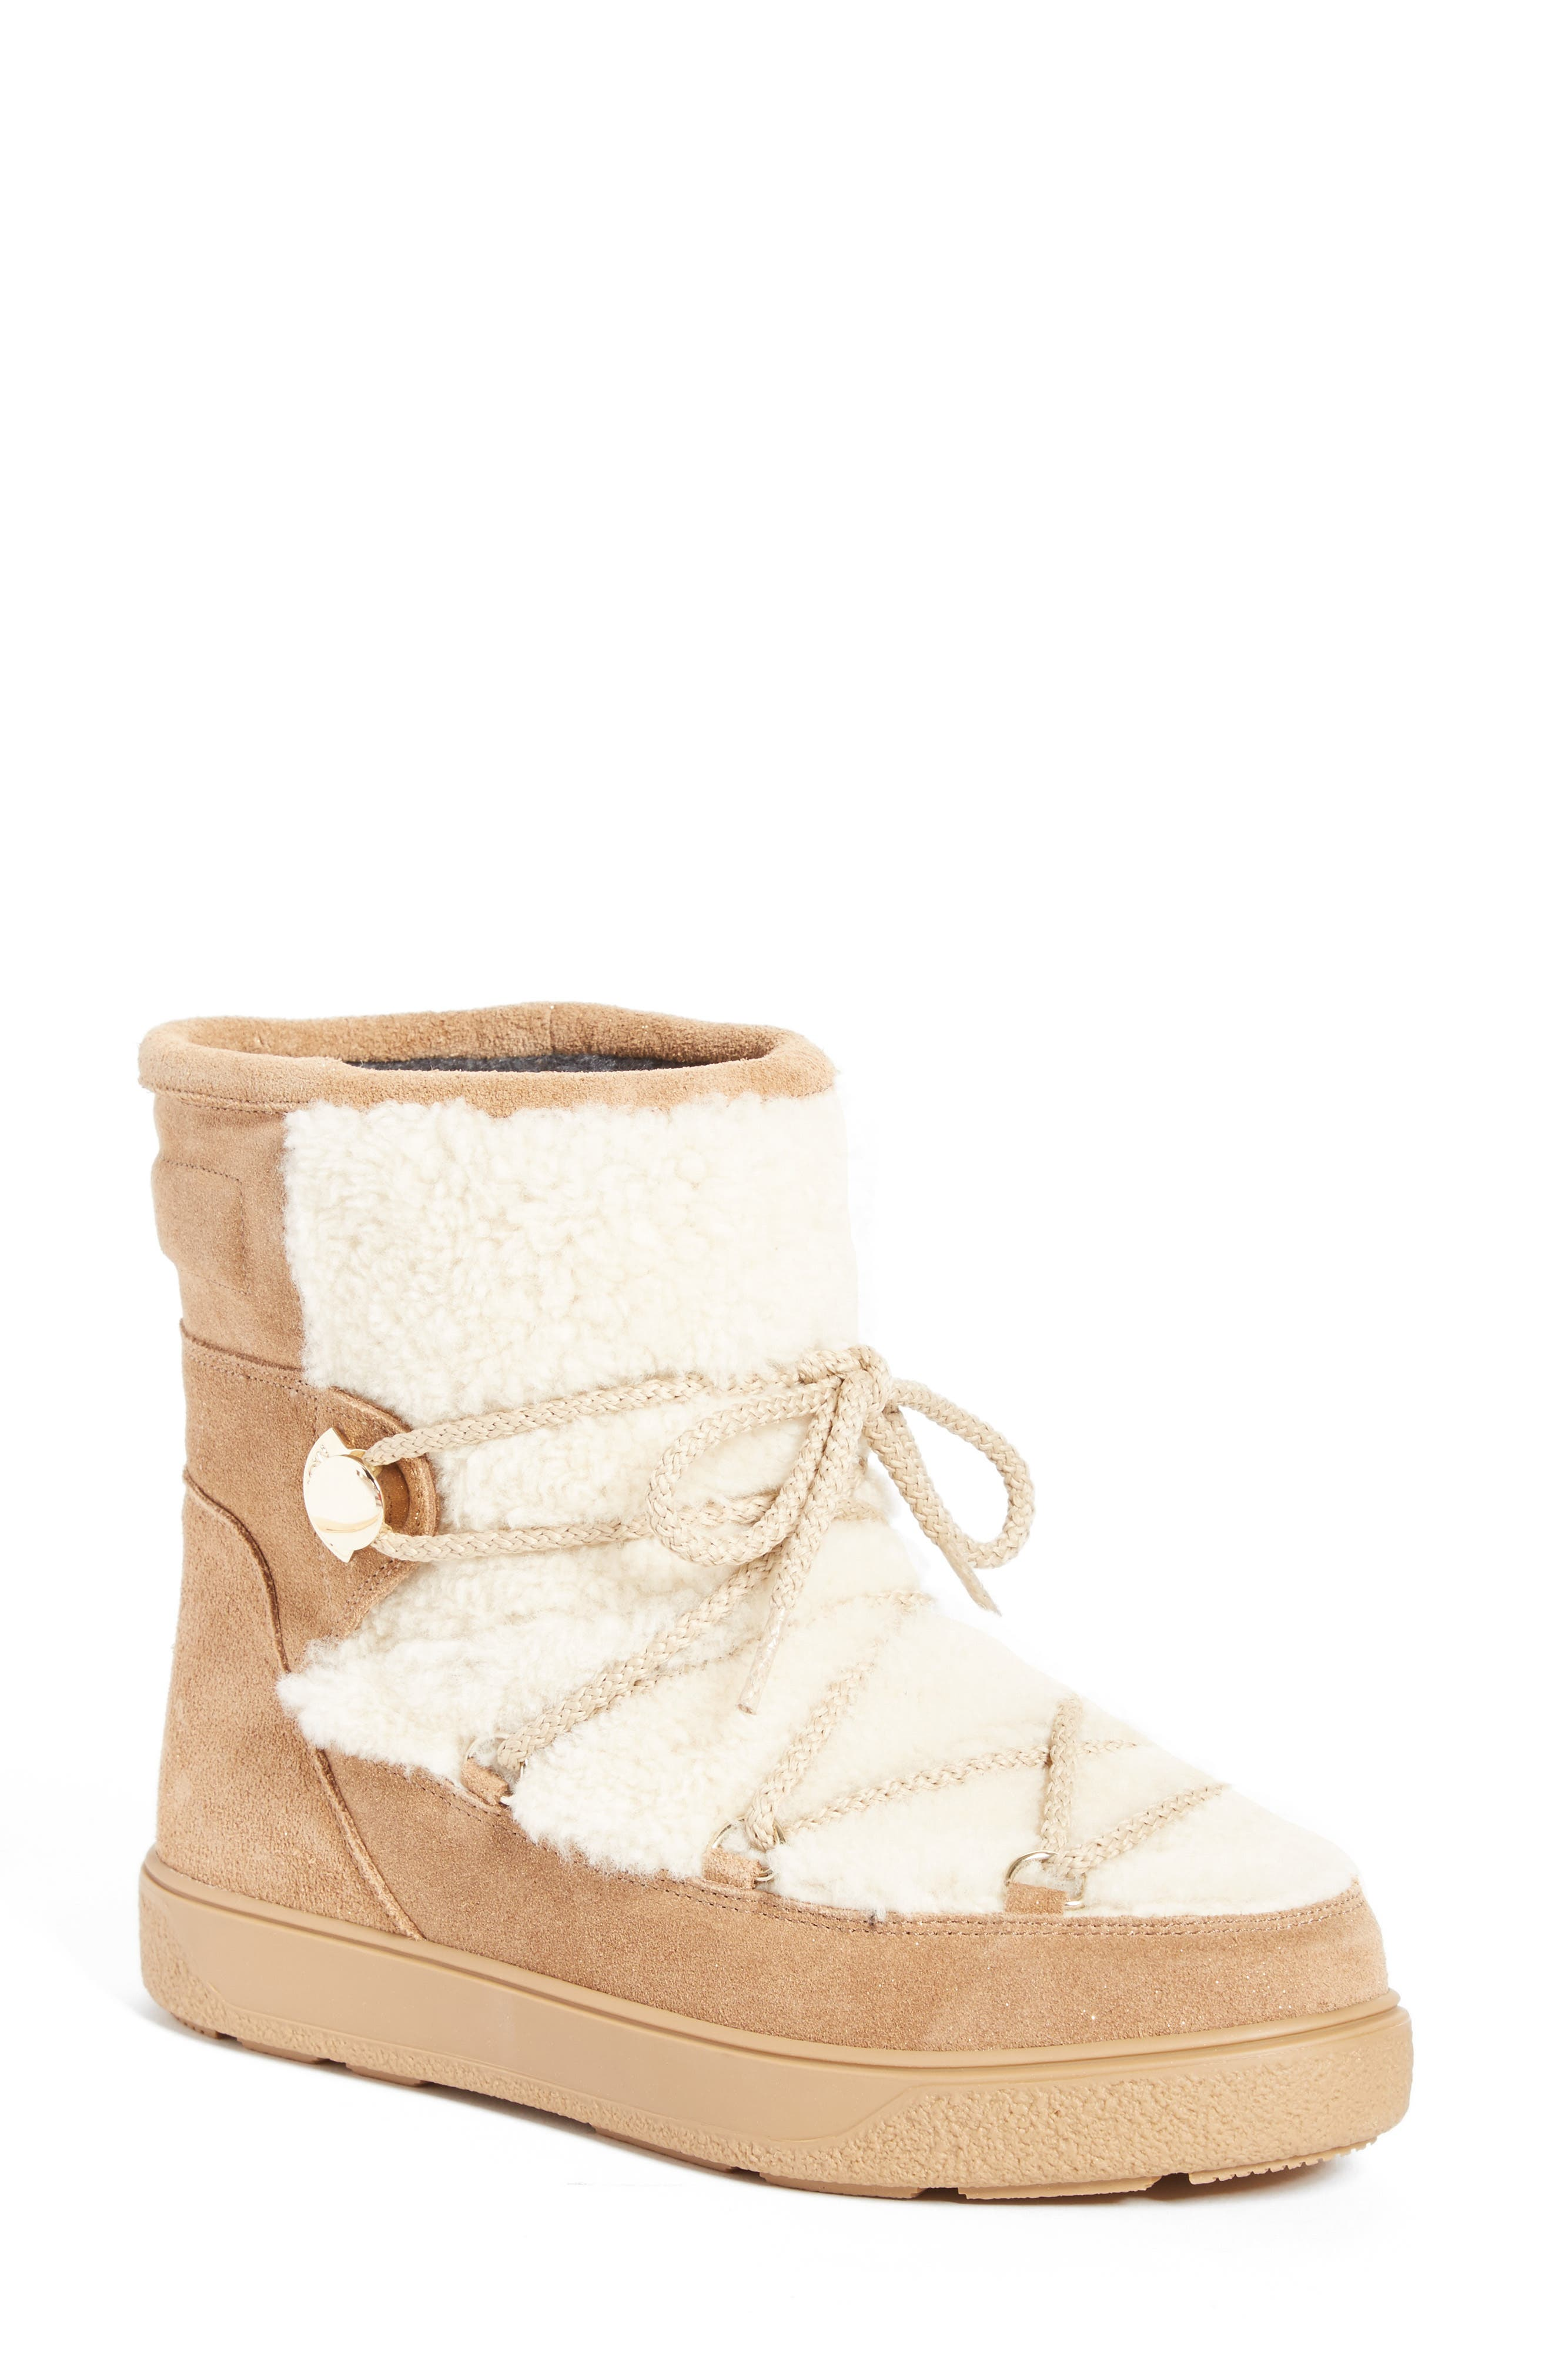 Moncler New Fanny Stivale Genuine Shearling Short Moon Boots (Women)